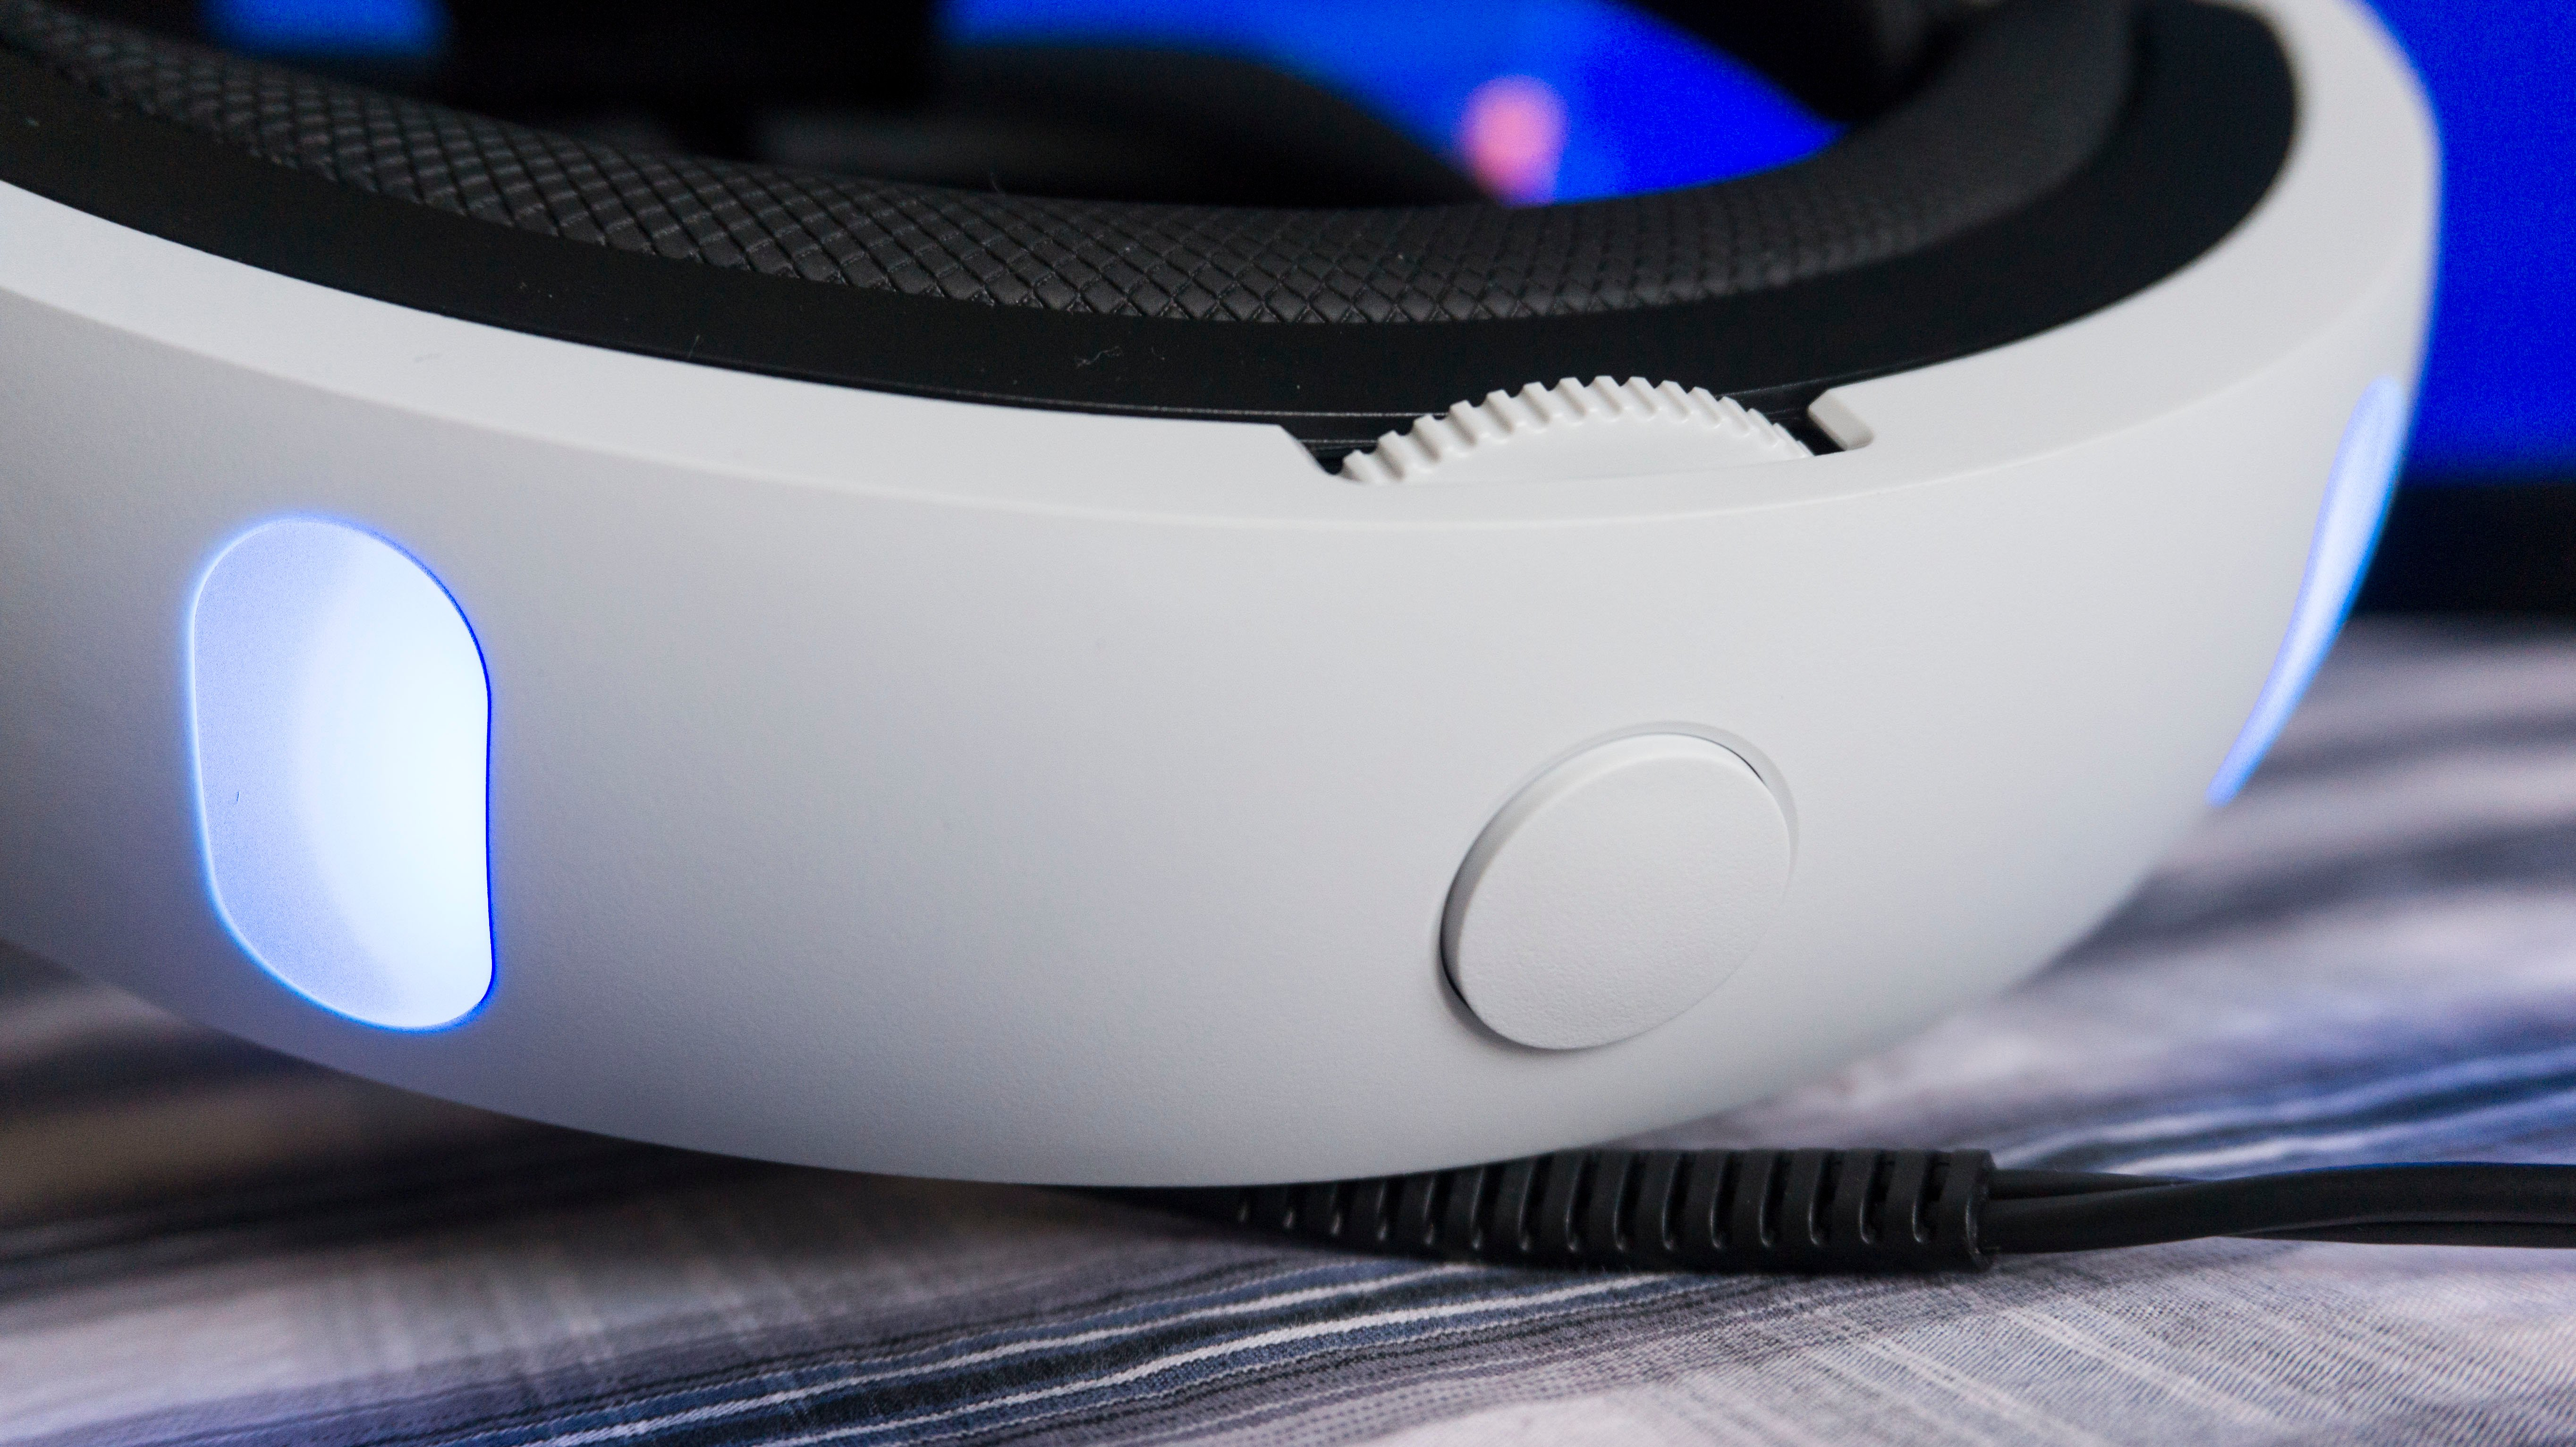 Psvr 2 Release Date Everything We Know About Sony S Next Gen Playstation Vr Expert Reviews